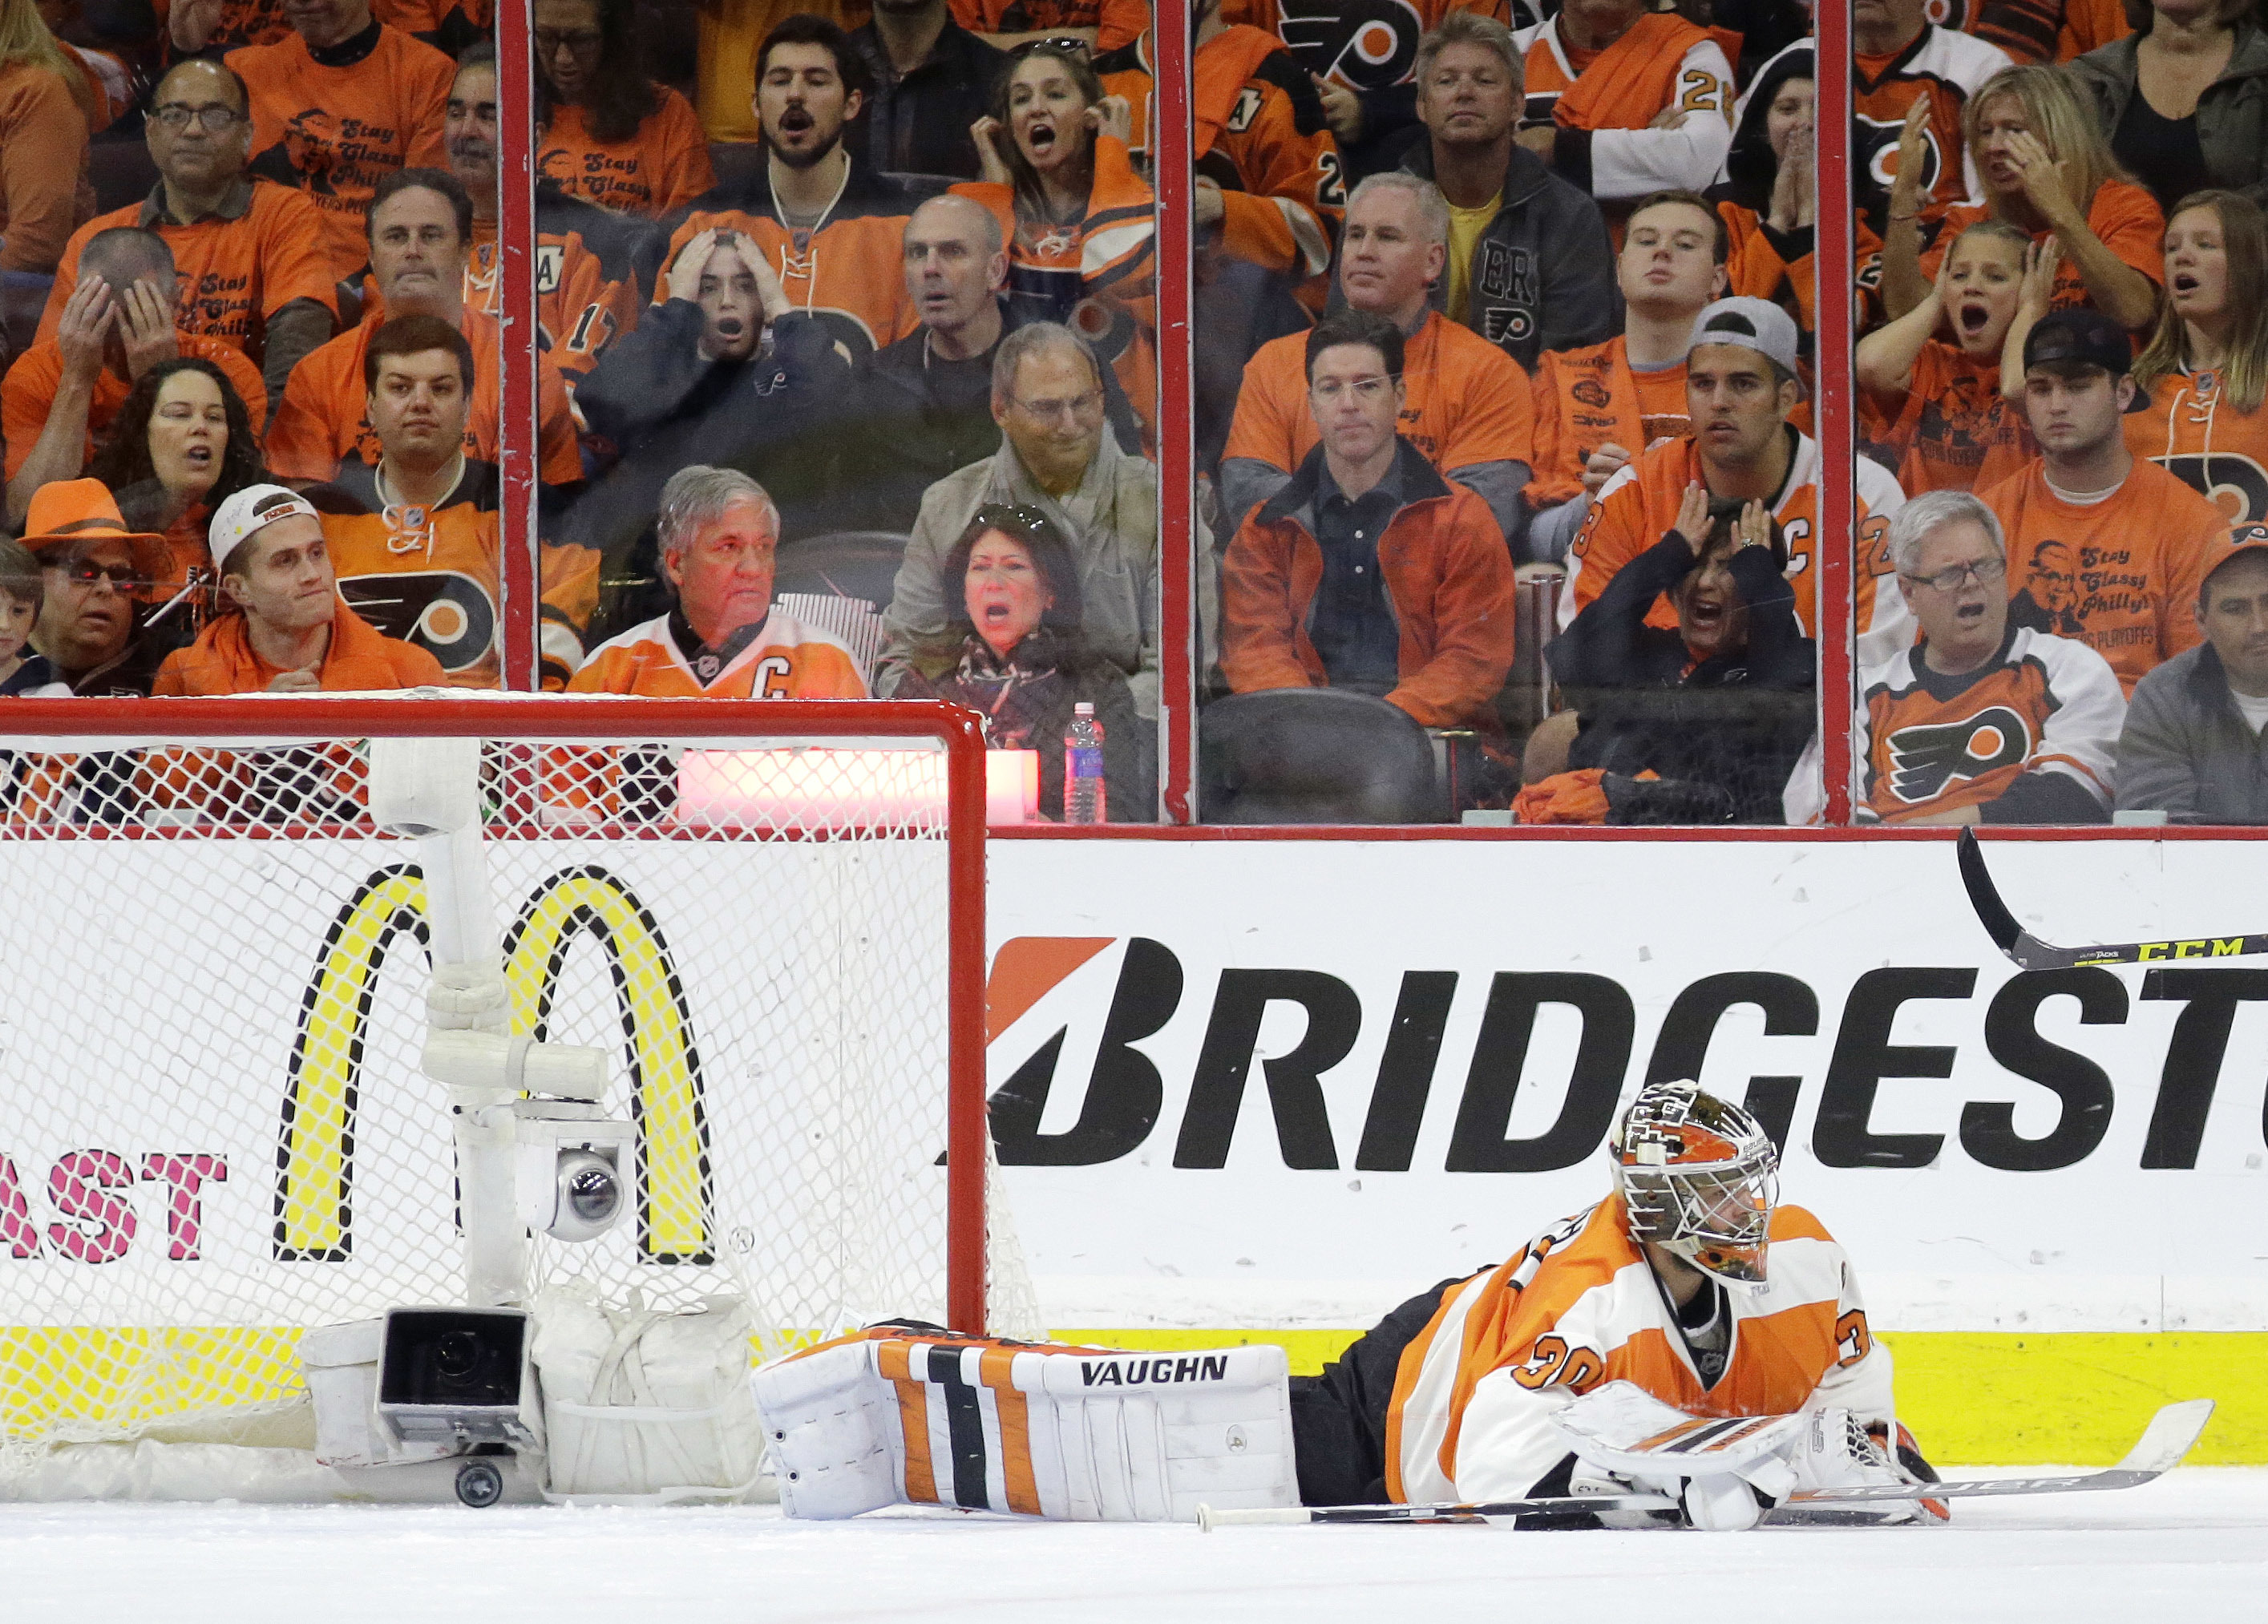 Fans reacts after a goal against Philadelphia Flyers' Michal Neuvirth by Washington Capitals' Nicklas Backstrom during the second period of Game 6 in the first round of the NHL Stanley Cup hockey playoffs, Sunday, April 24, 2016, in Philadelphia. (AP Phot